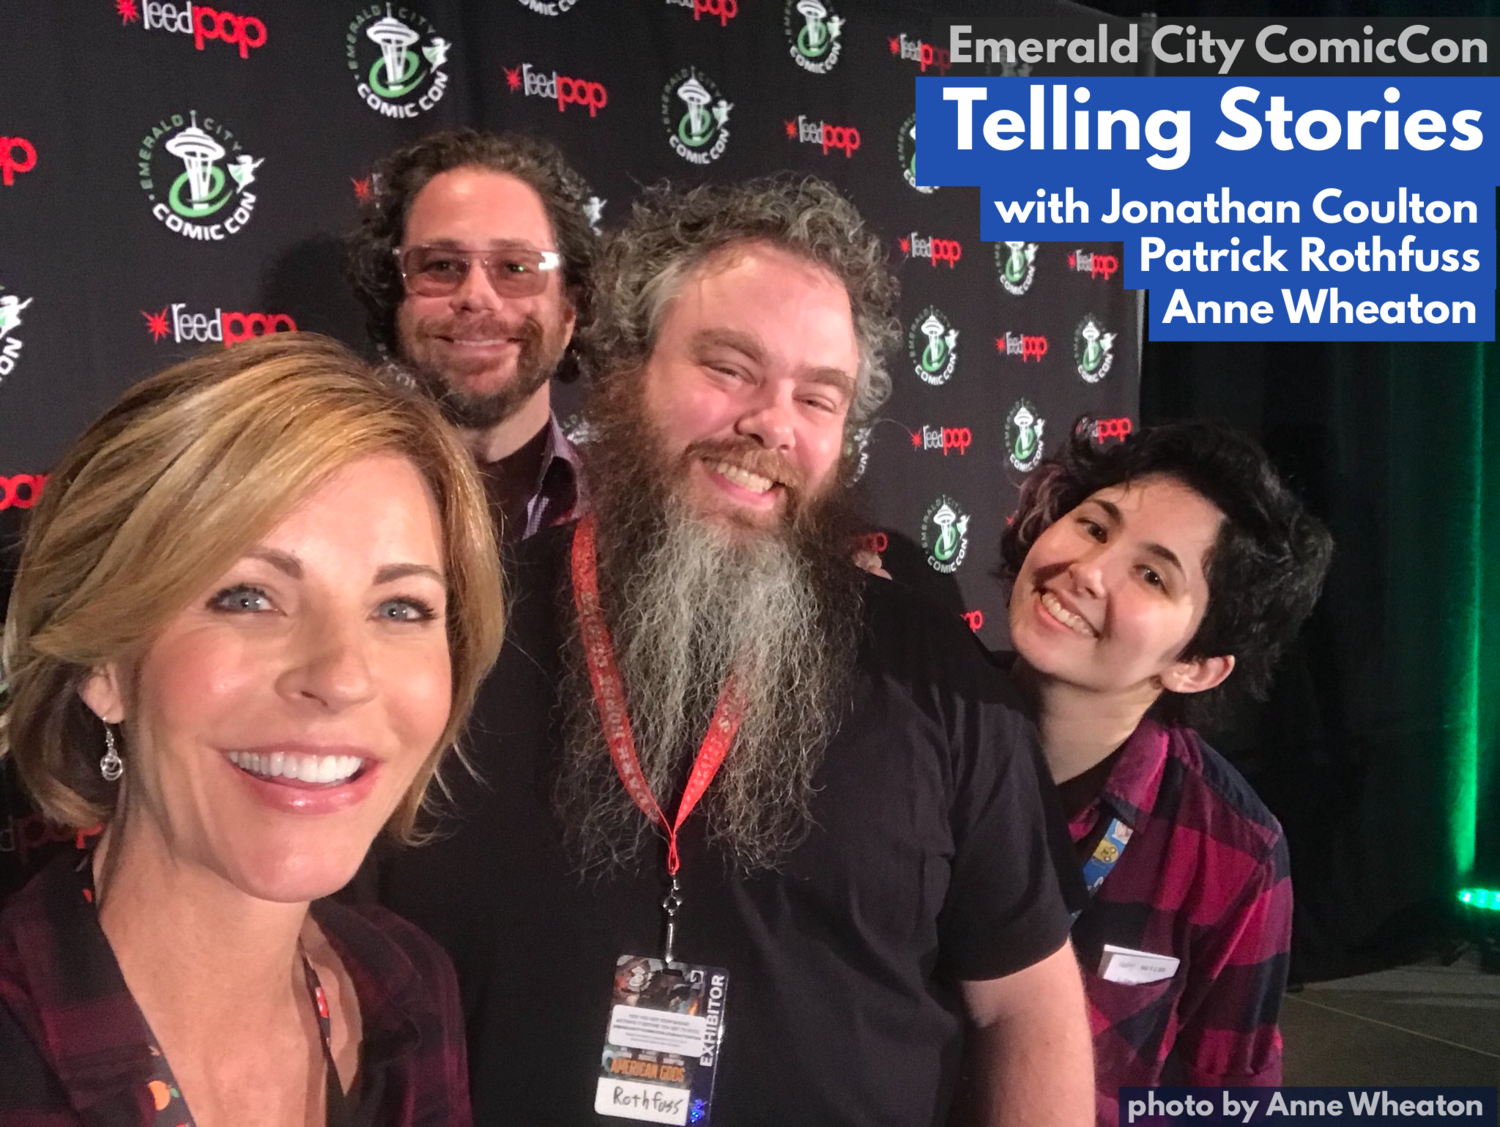 ECCC: Telling Stories (w/ Jonathan Coulton, Patrick Rothfuss